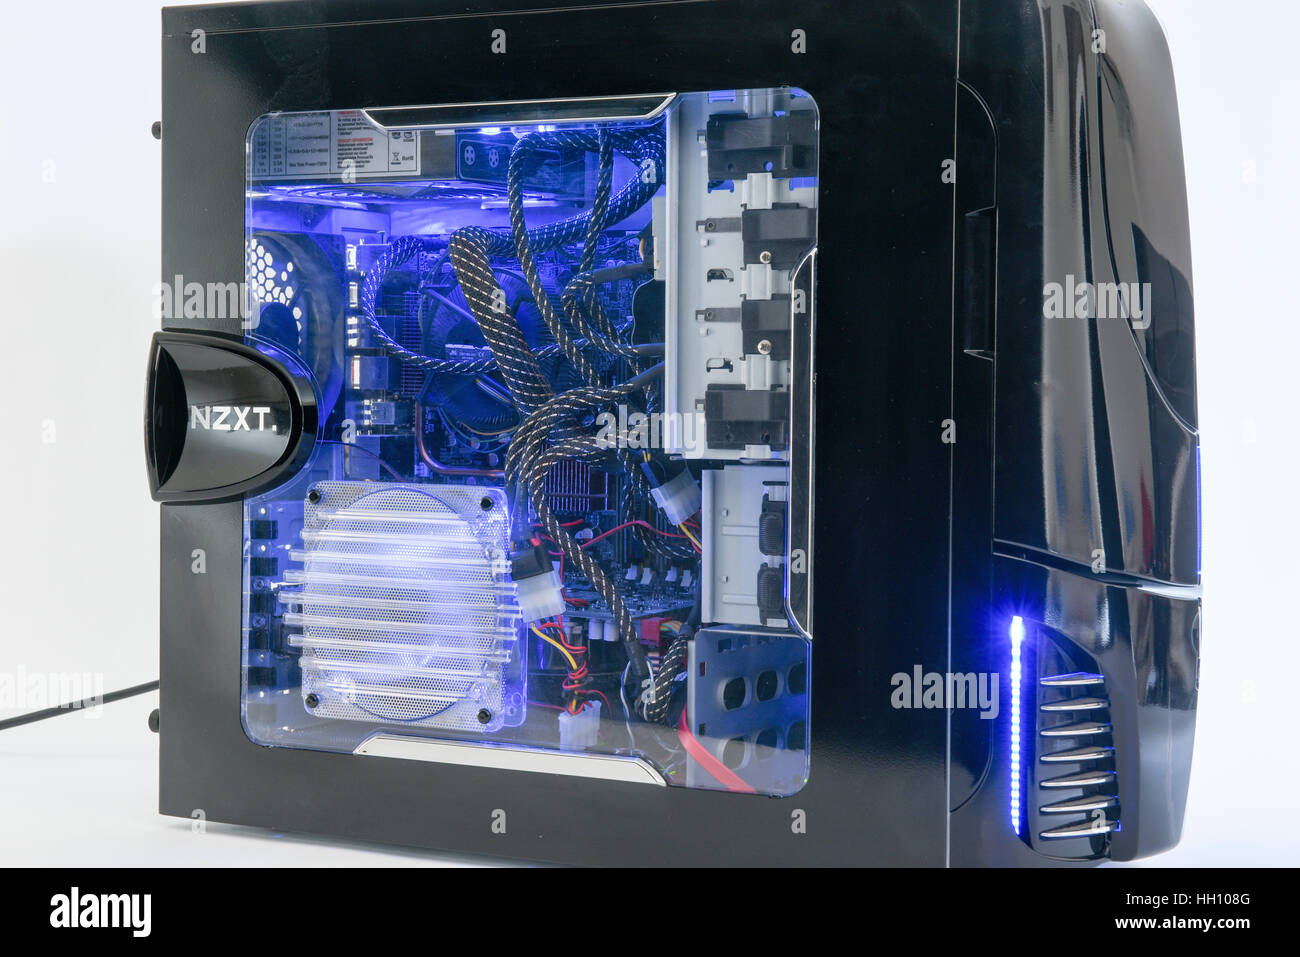 Illuminated computer hardware with a look inside the box - Stock Image